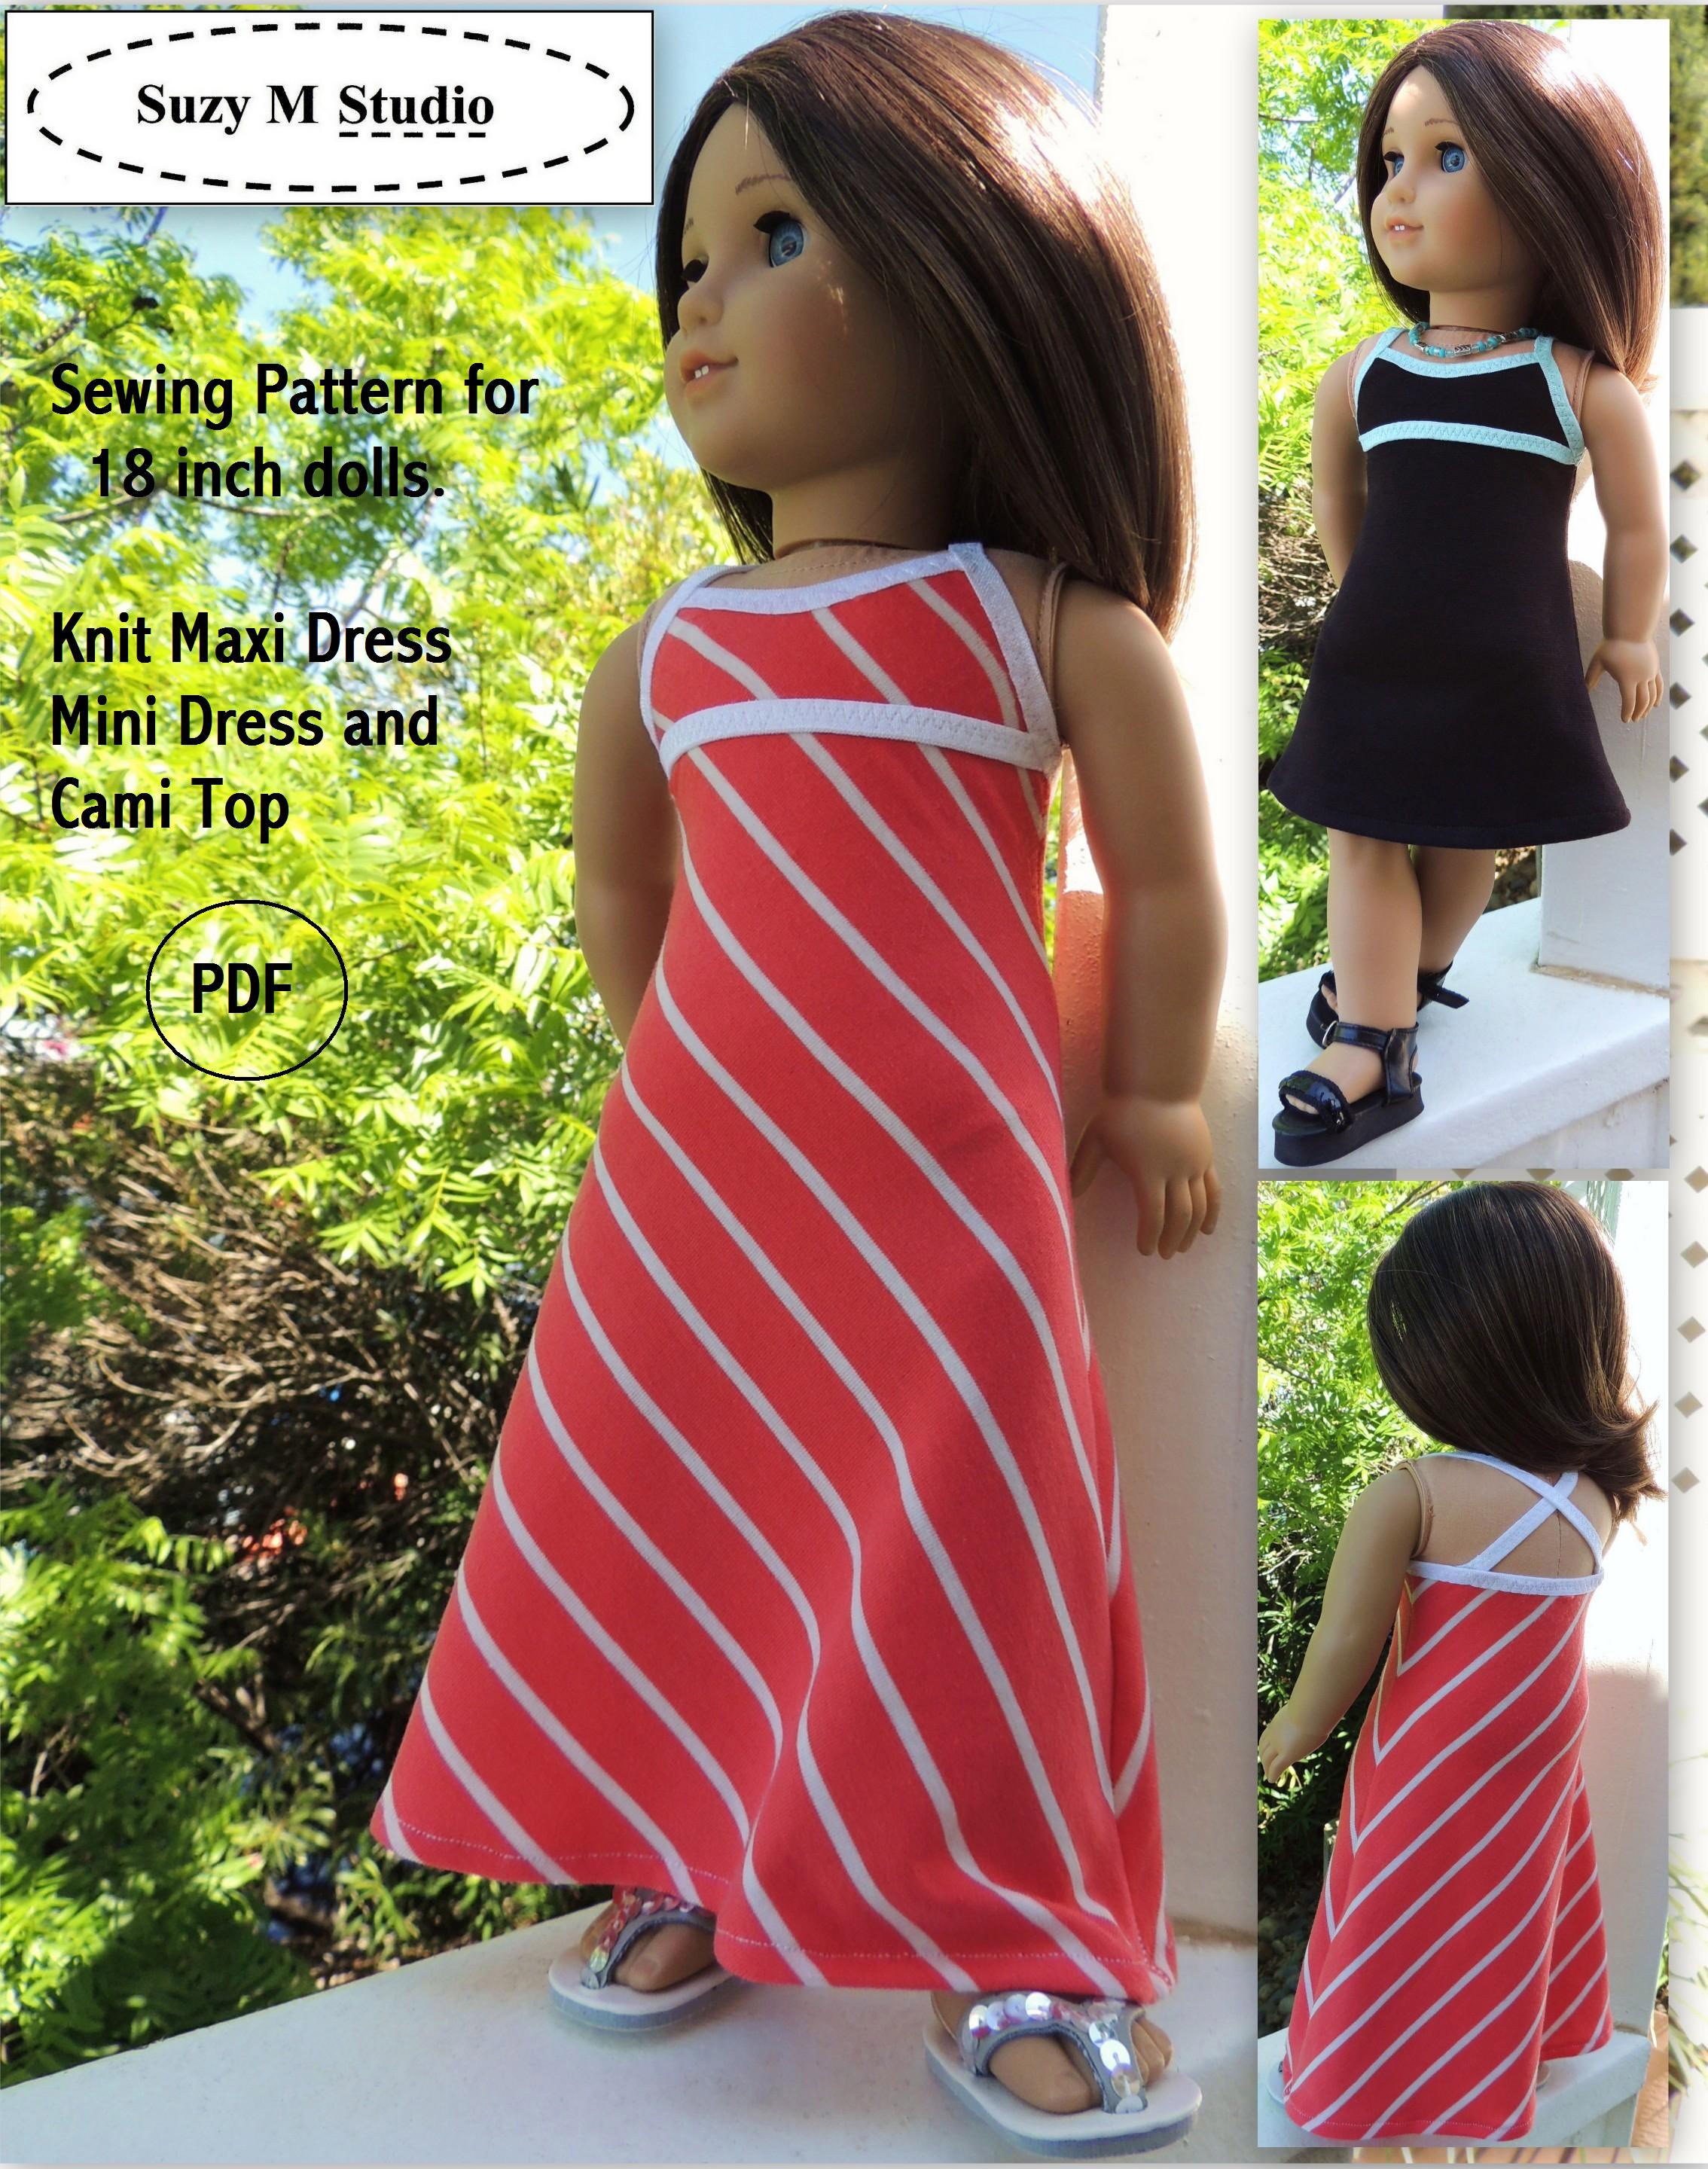 Knit Maxi Dress Pattern : SuzyMStudio Doll Clothes and Sewing Patterns